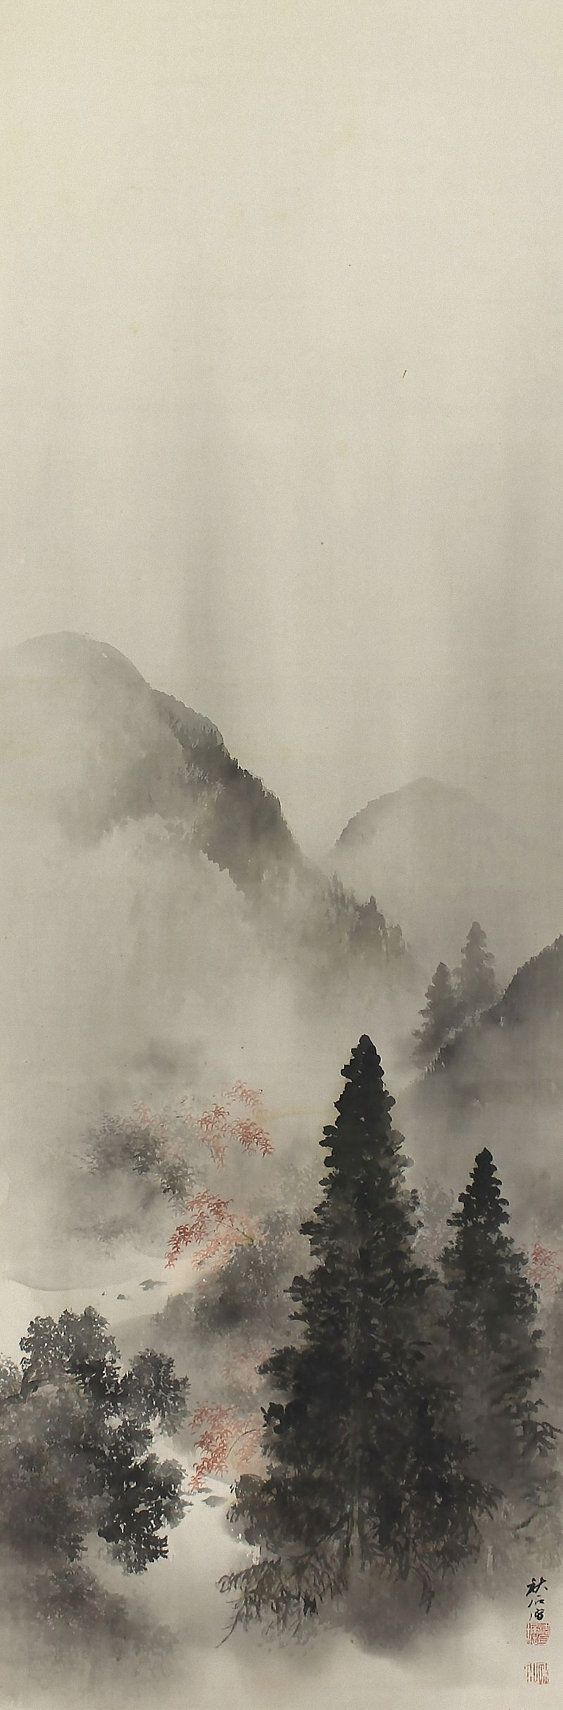 natue in chinese landscape painting Beauty of nature quotes  father and son look alike funny raccoonoon funny raccoonoon future projects game dayuming german expressionis painting.